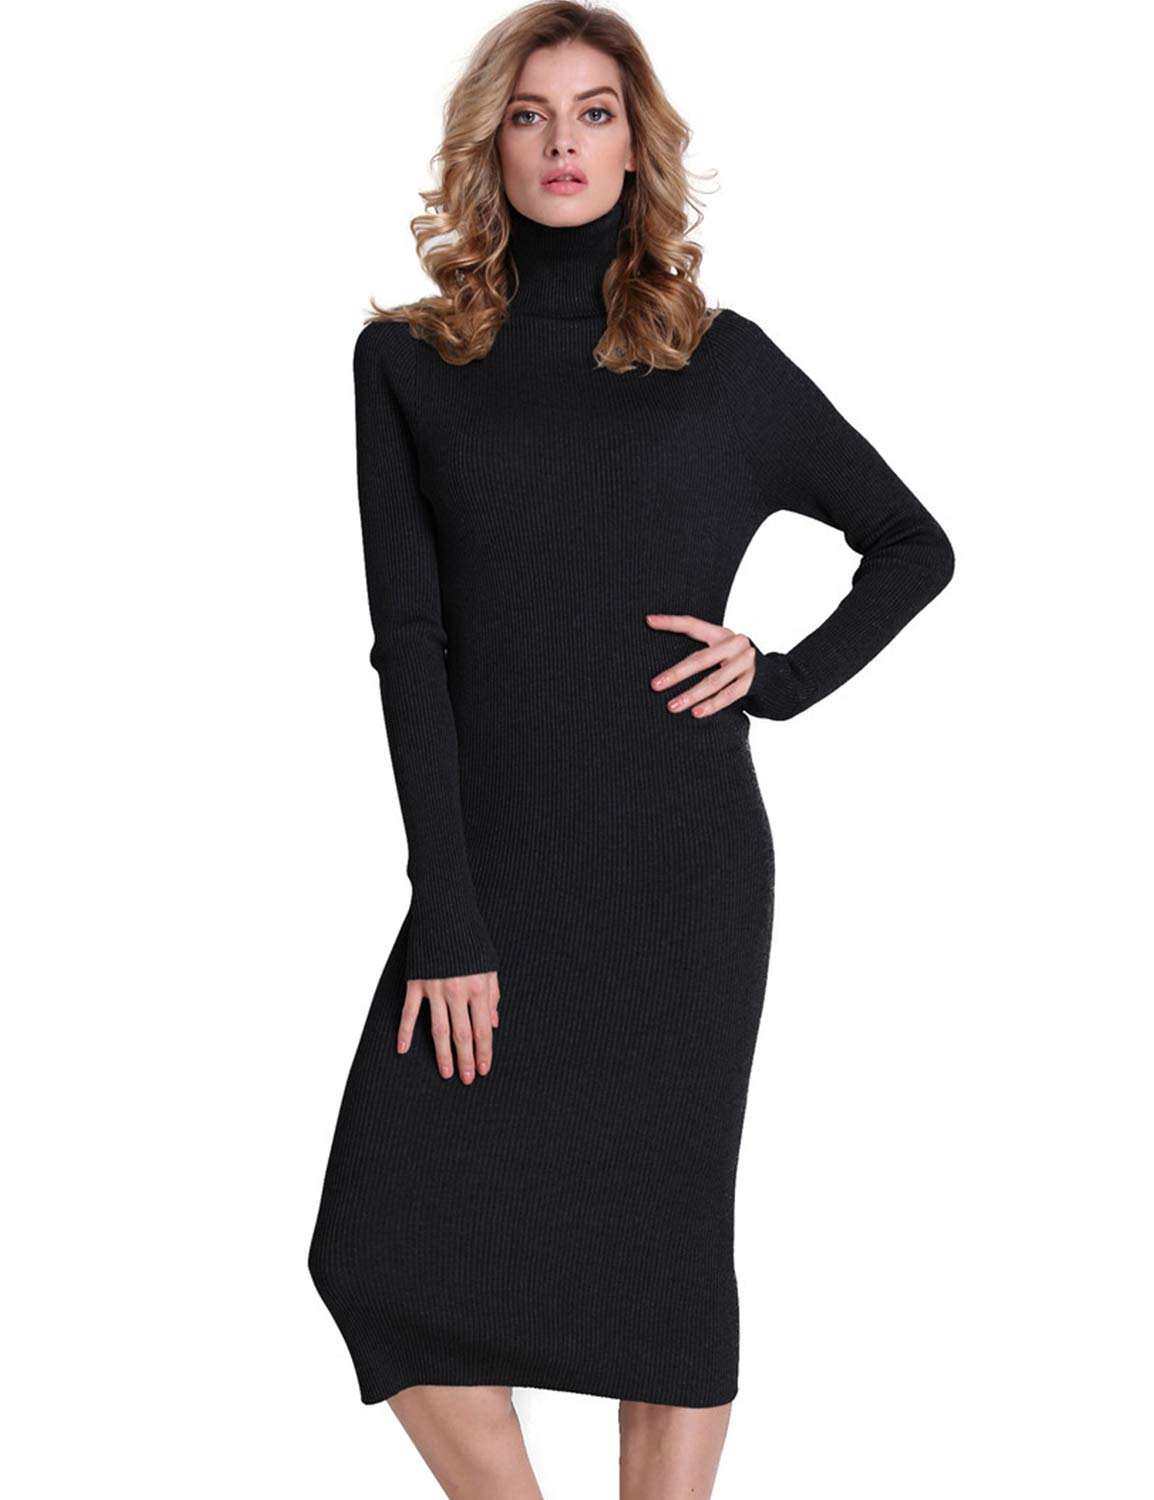 Sweater Dress - Women's Elegant V Neck Wrap Knit Dresses Batwing Sleeve Backless Slit Maxi Dress With Belted